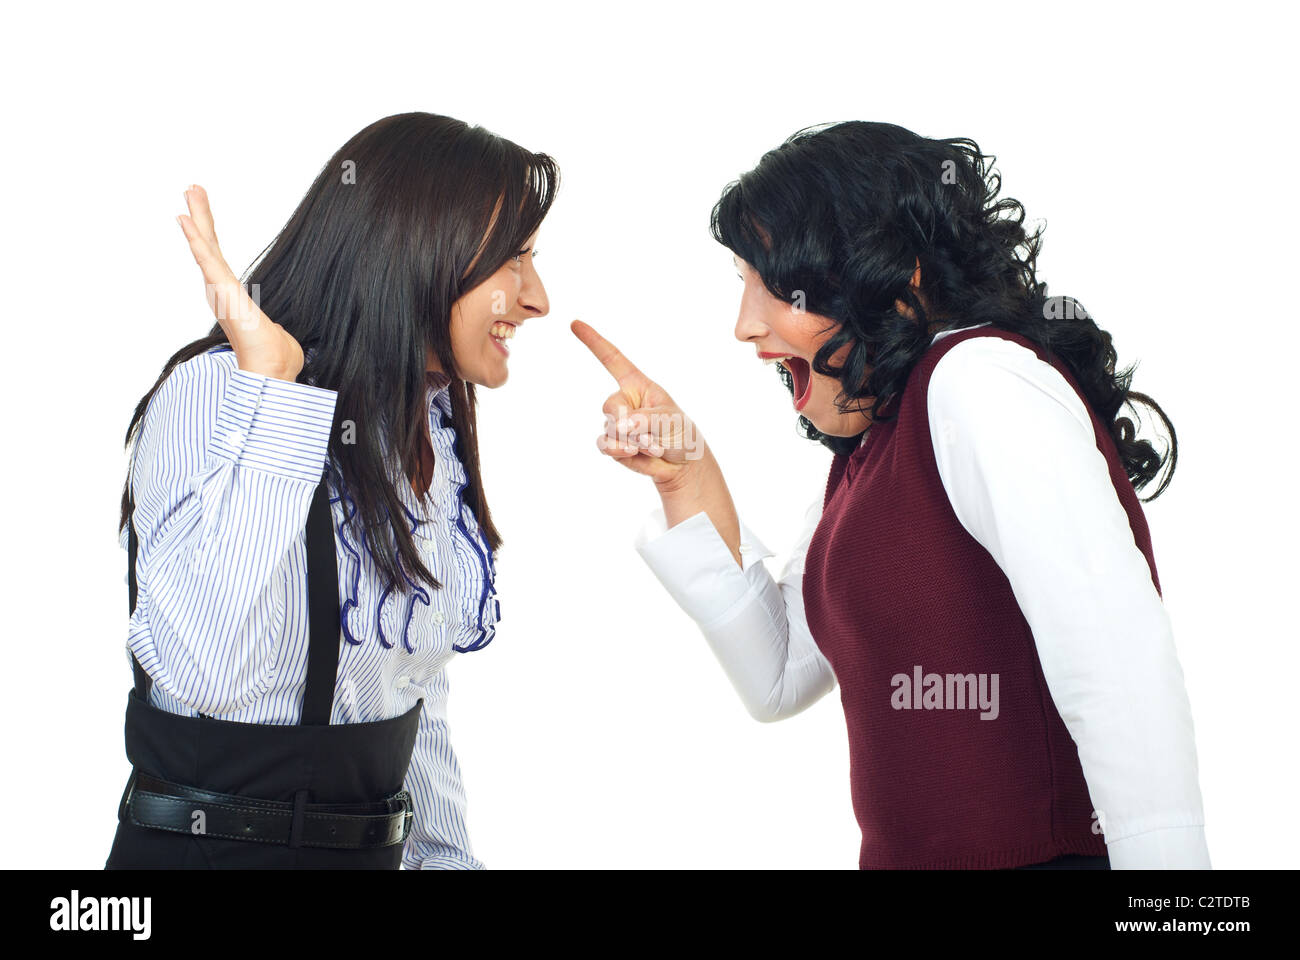 Two women having a funny confrontation and accusatory and laughing together isolated on white background - Stock Image